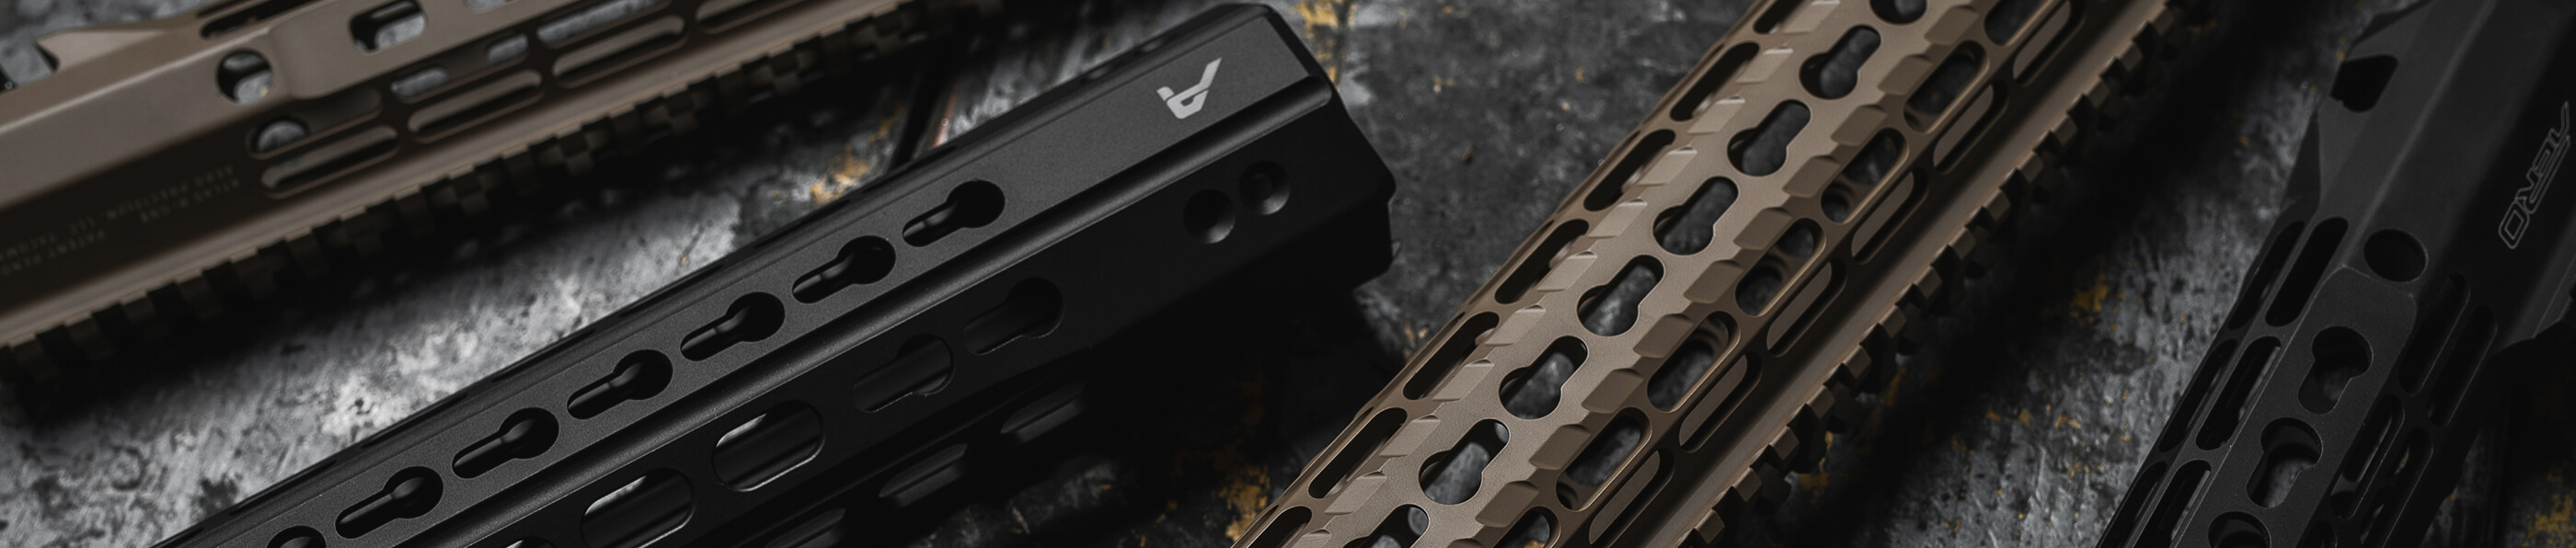 Free Float Handguards